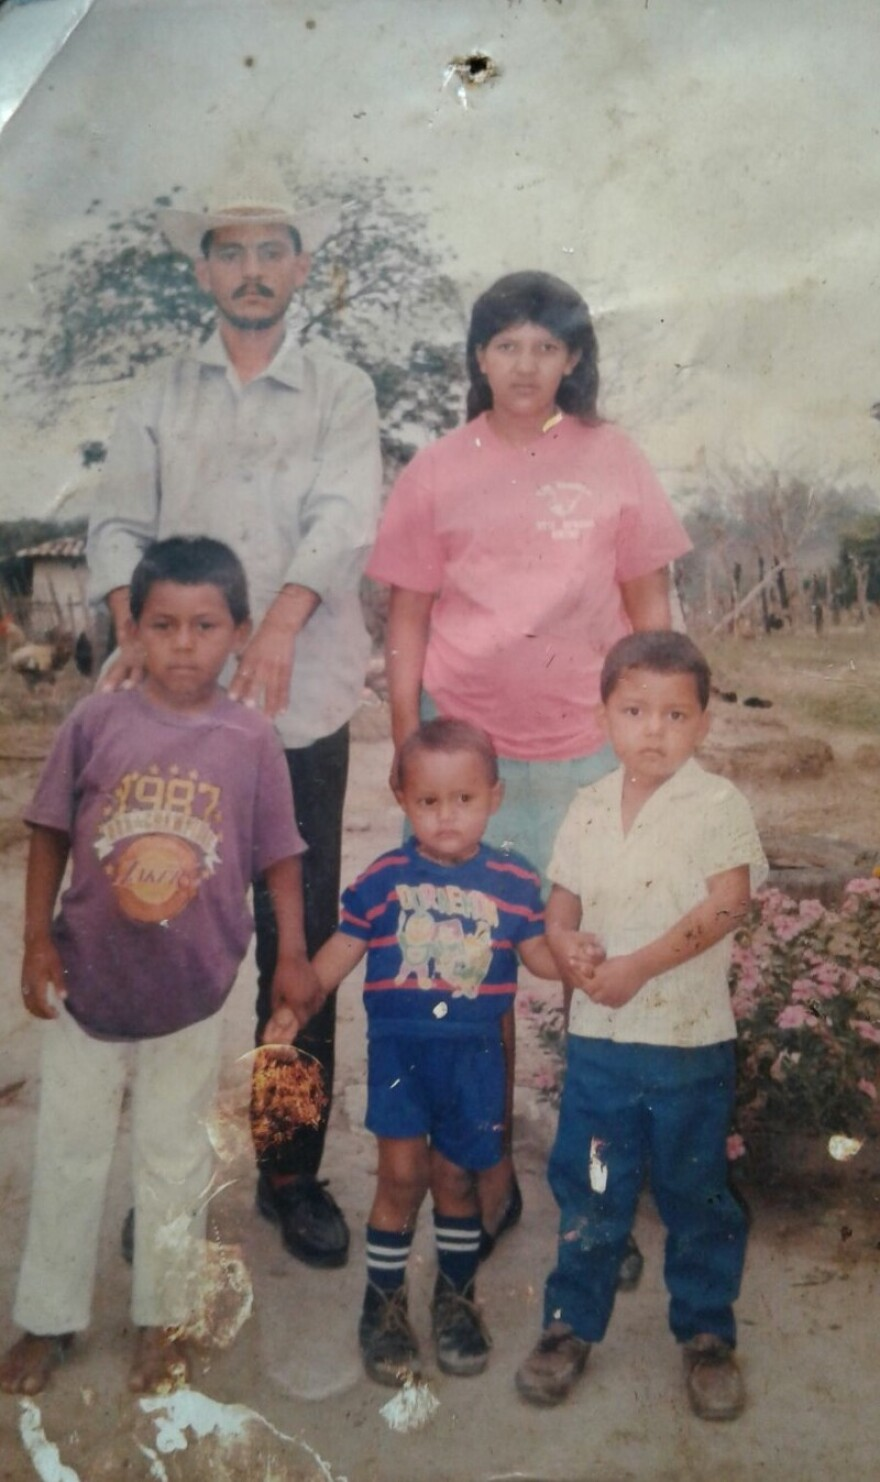 Yency Contreras (purple shirt) with his family in Honduras as a boy. He left home at 17 for the U.S., eventually becoming a citizen and a CMPD officer.